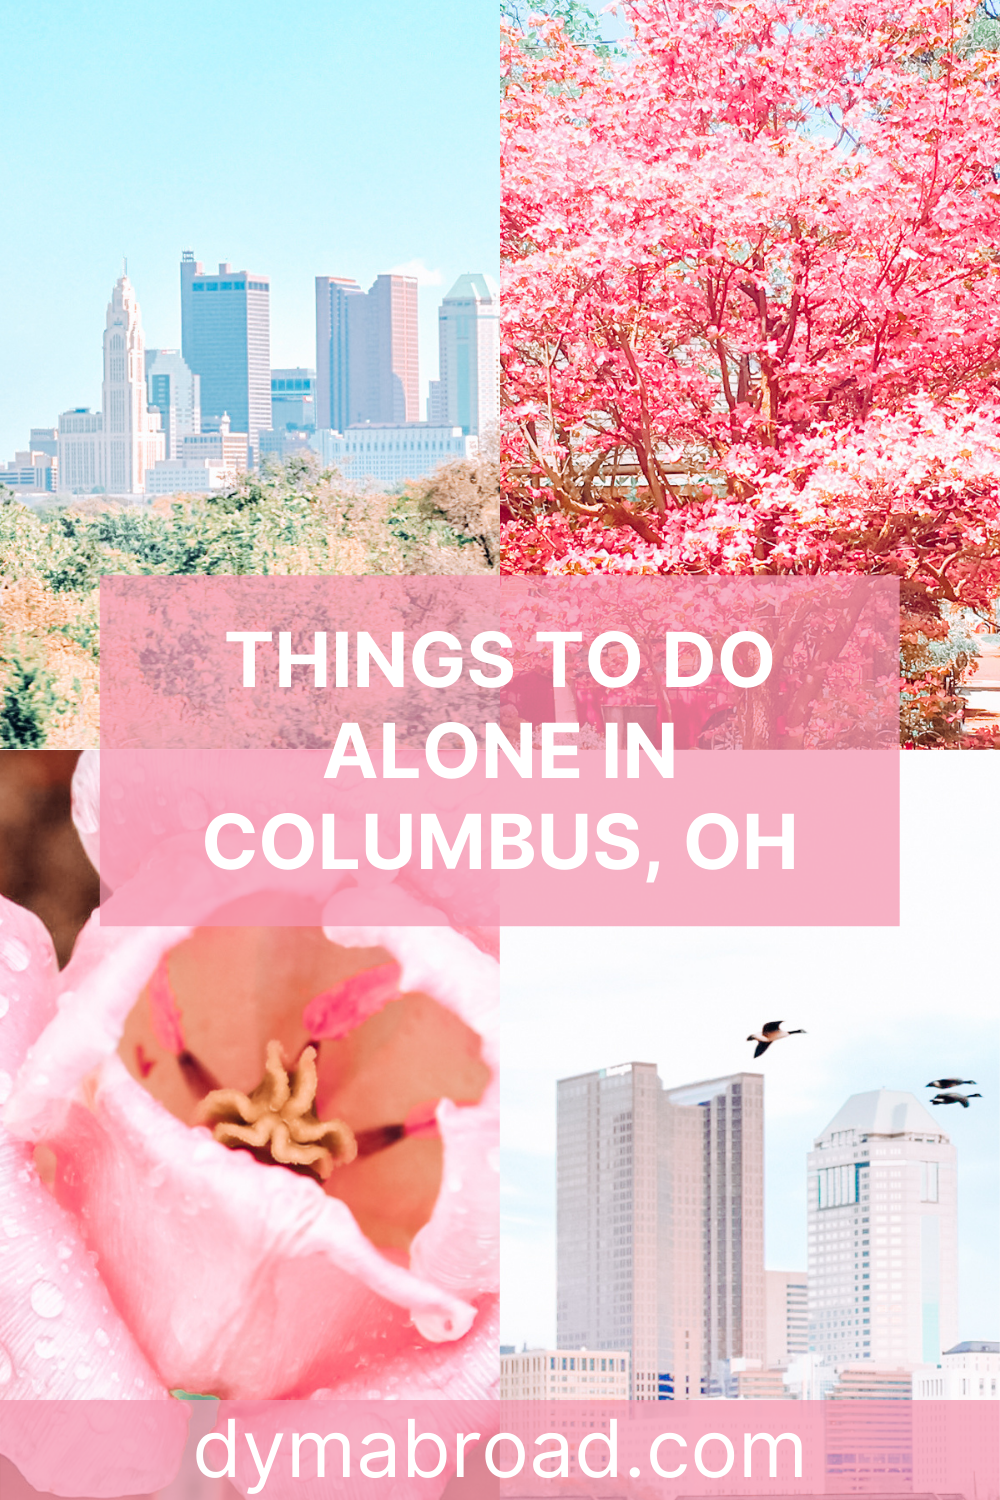 Things to do alone in Columbus Pinterest image